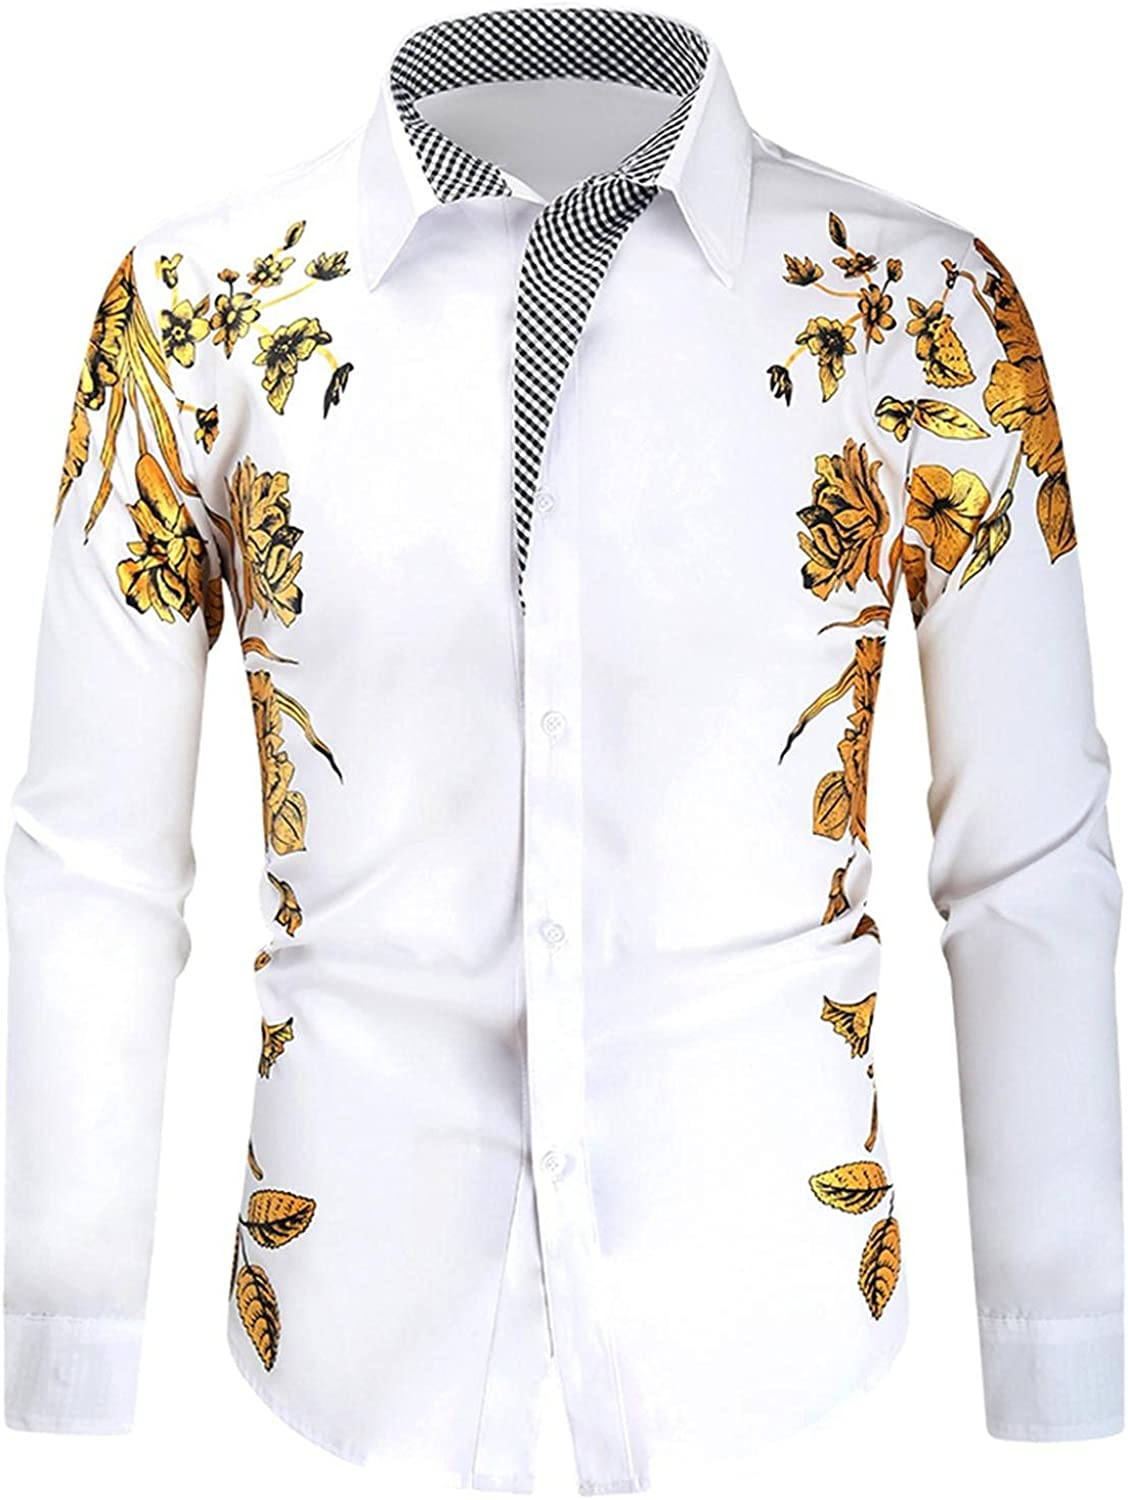 Men's Dress Shirts Novelty Bronzing Embroidered Printed Tops Casual Lapel Button Down Blouse Slim Fit Business Tshirt